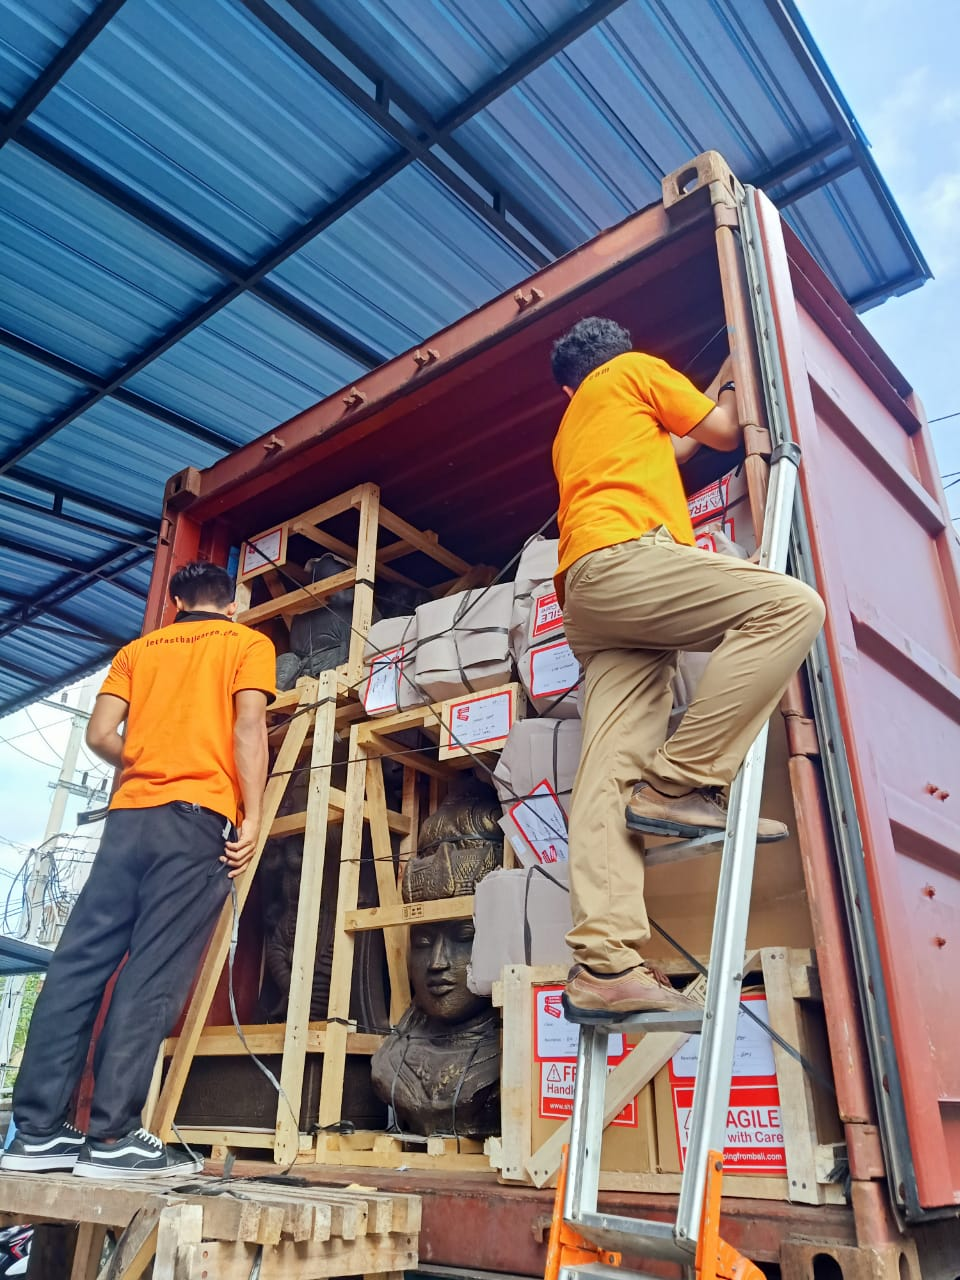 Sending Cargo From Bali to Adelaide